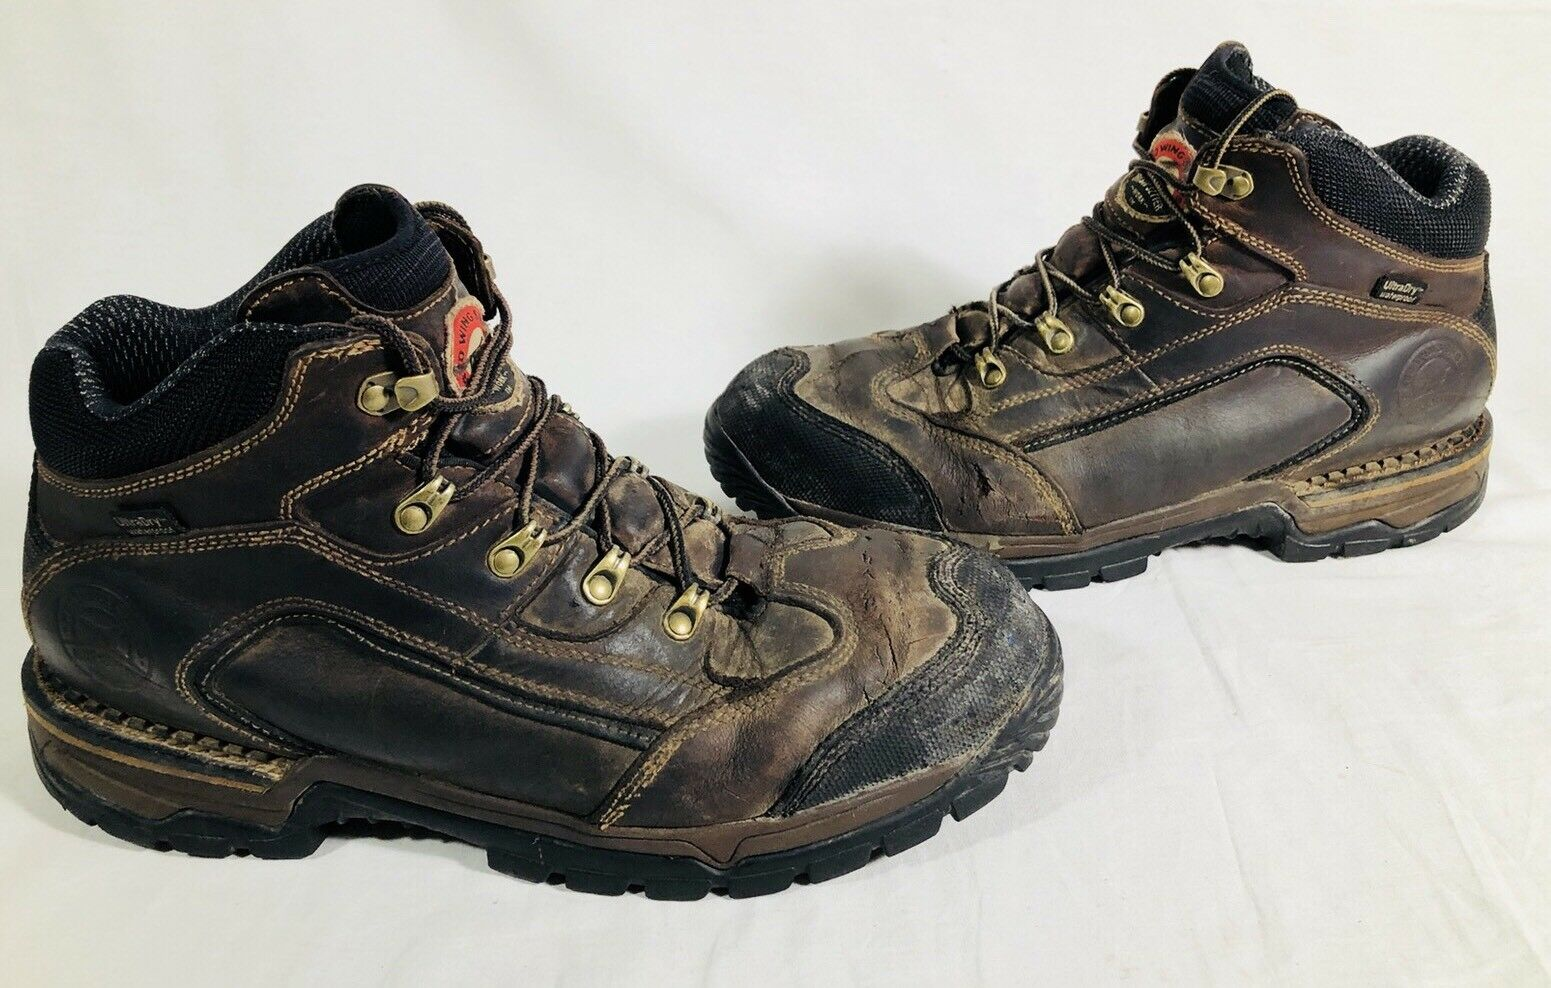 Red Wing Irish Setter Men's Ultra Dry Steel Toe Boots Size 12 M